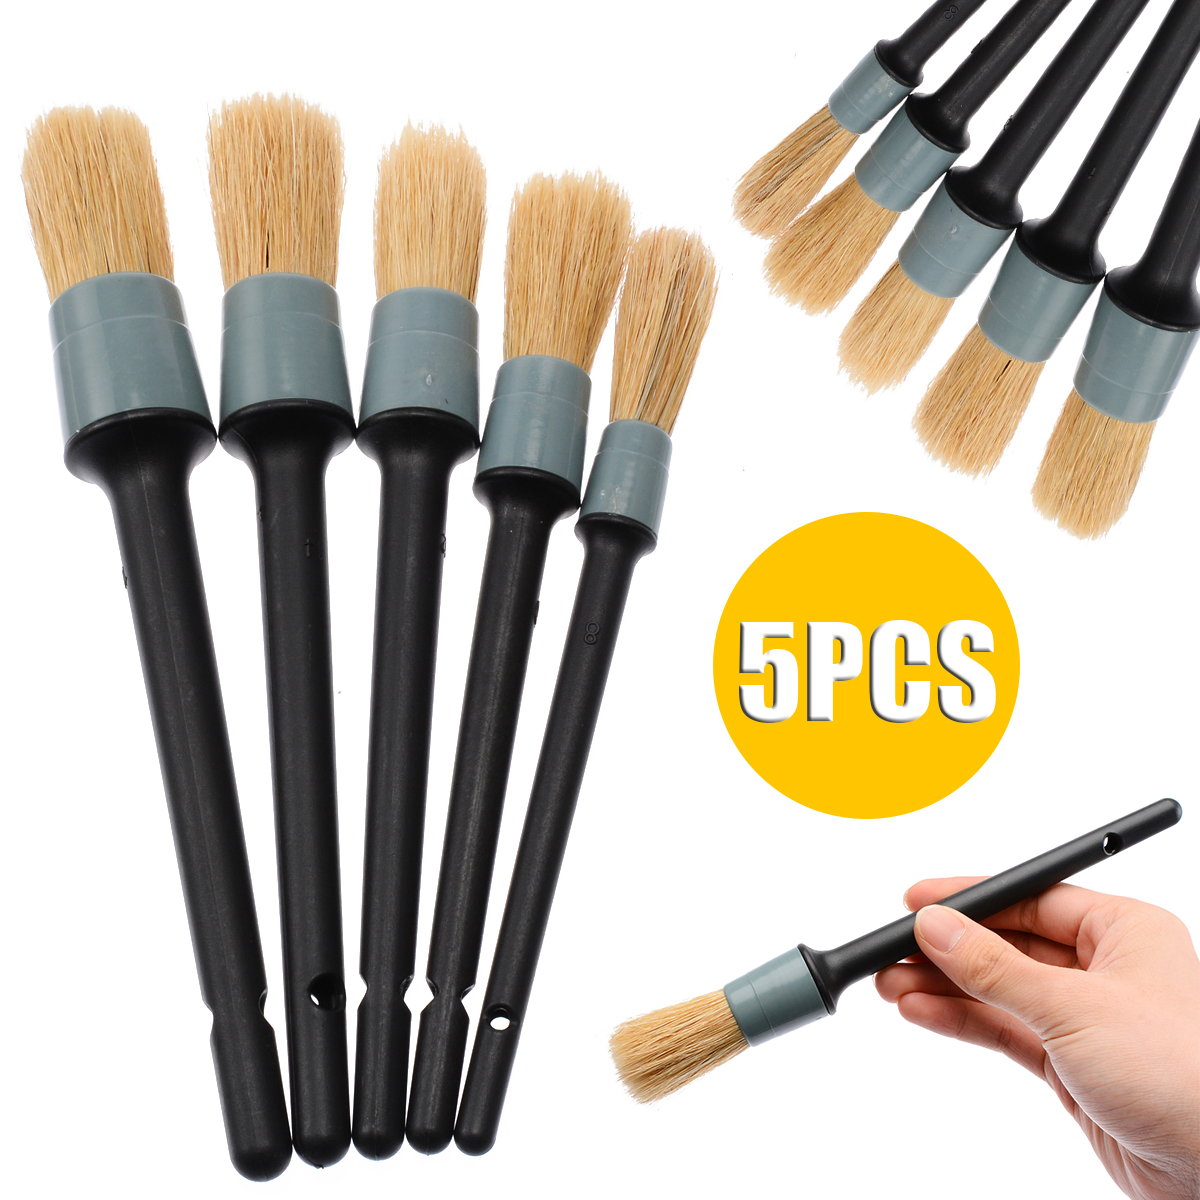 5pcs set Durable Clean Brushes 19cm 24cm Soft Car Detailing Brushes for Dash Trim Engine Wheel Cleaning in Sponges Cloths Brushes from Automobiles Motorcycles